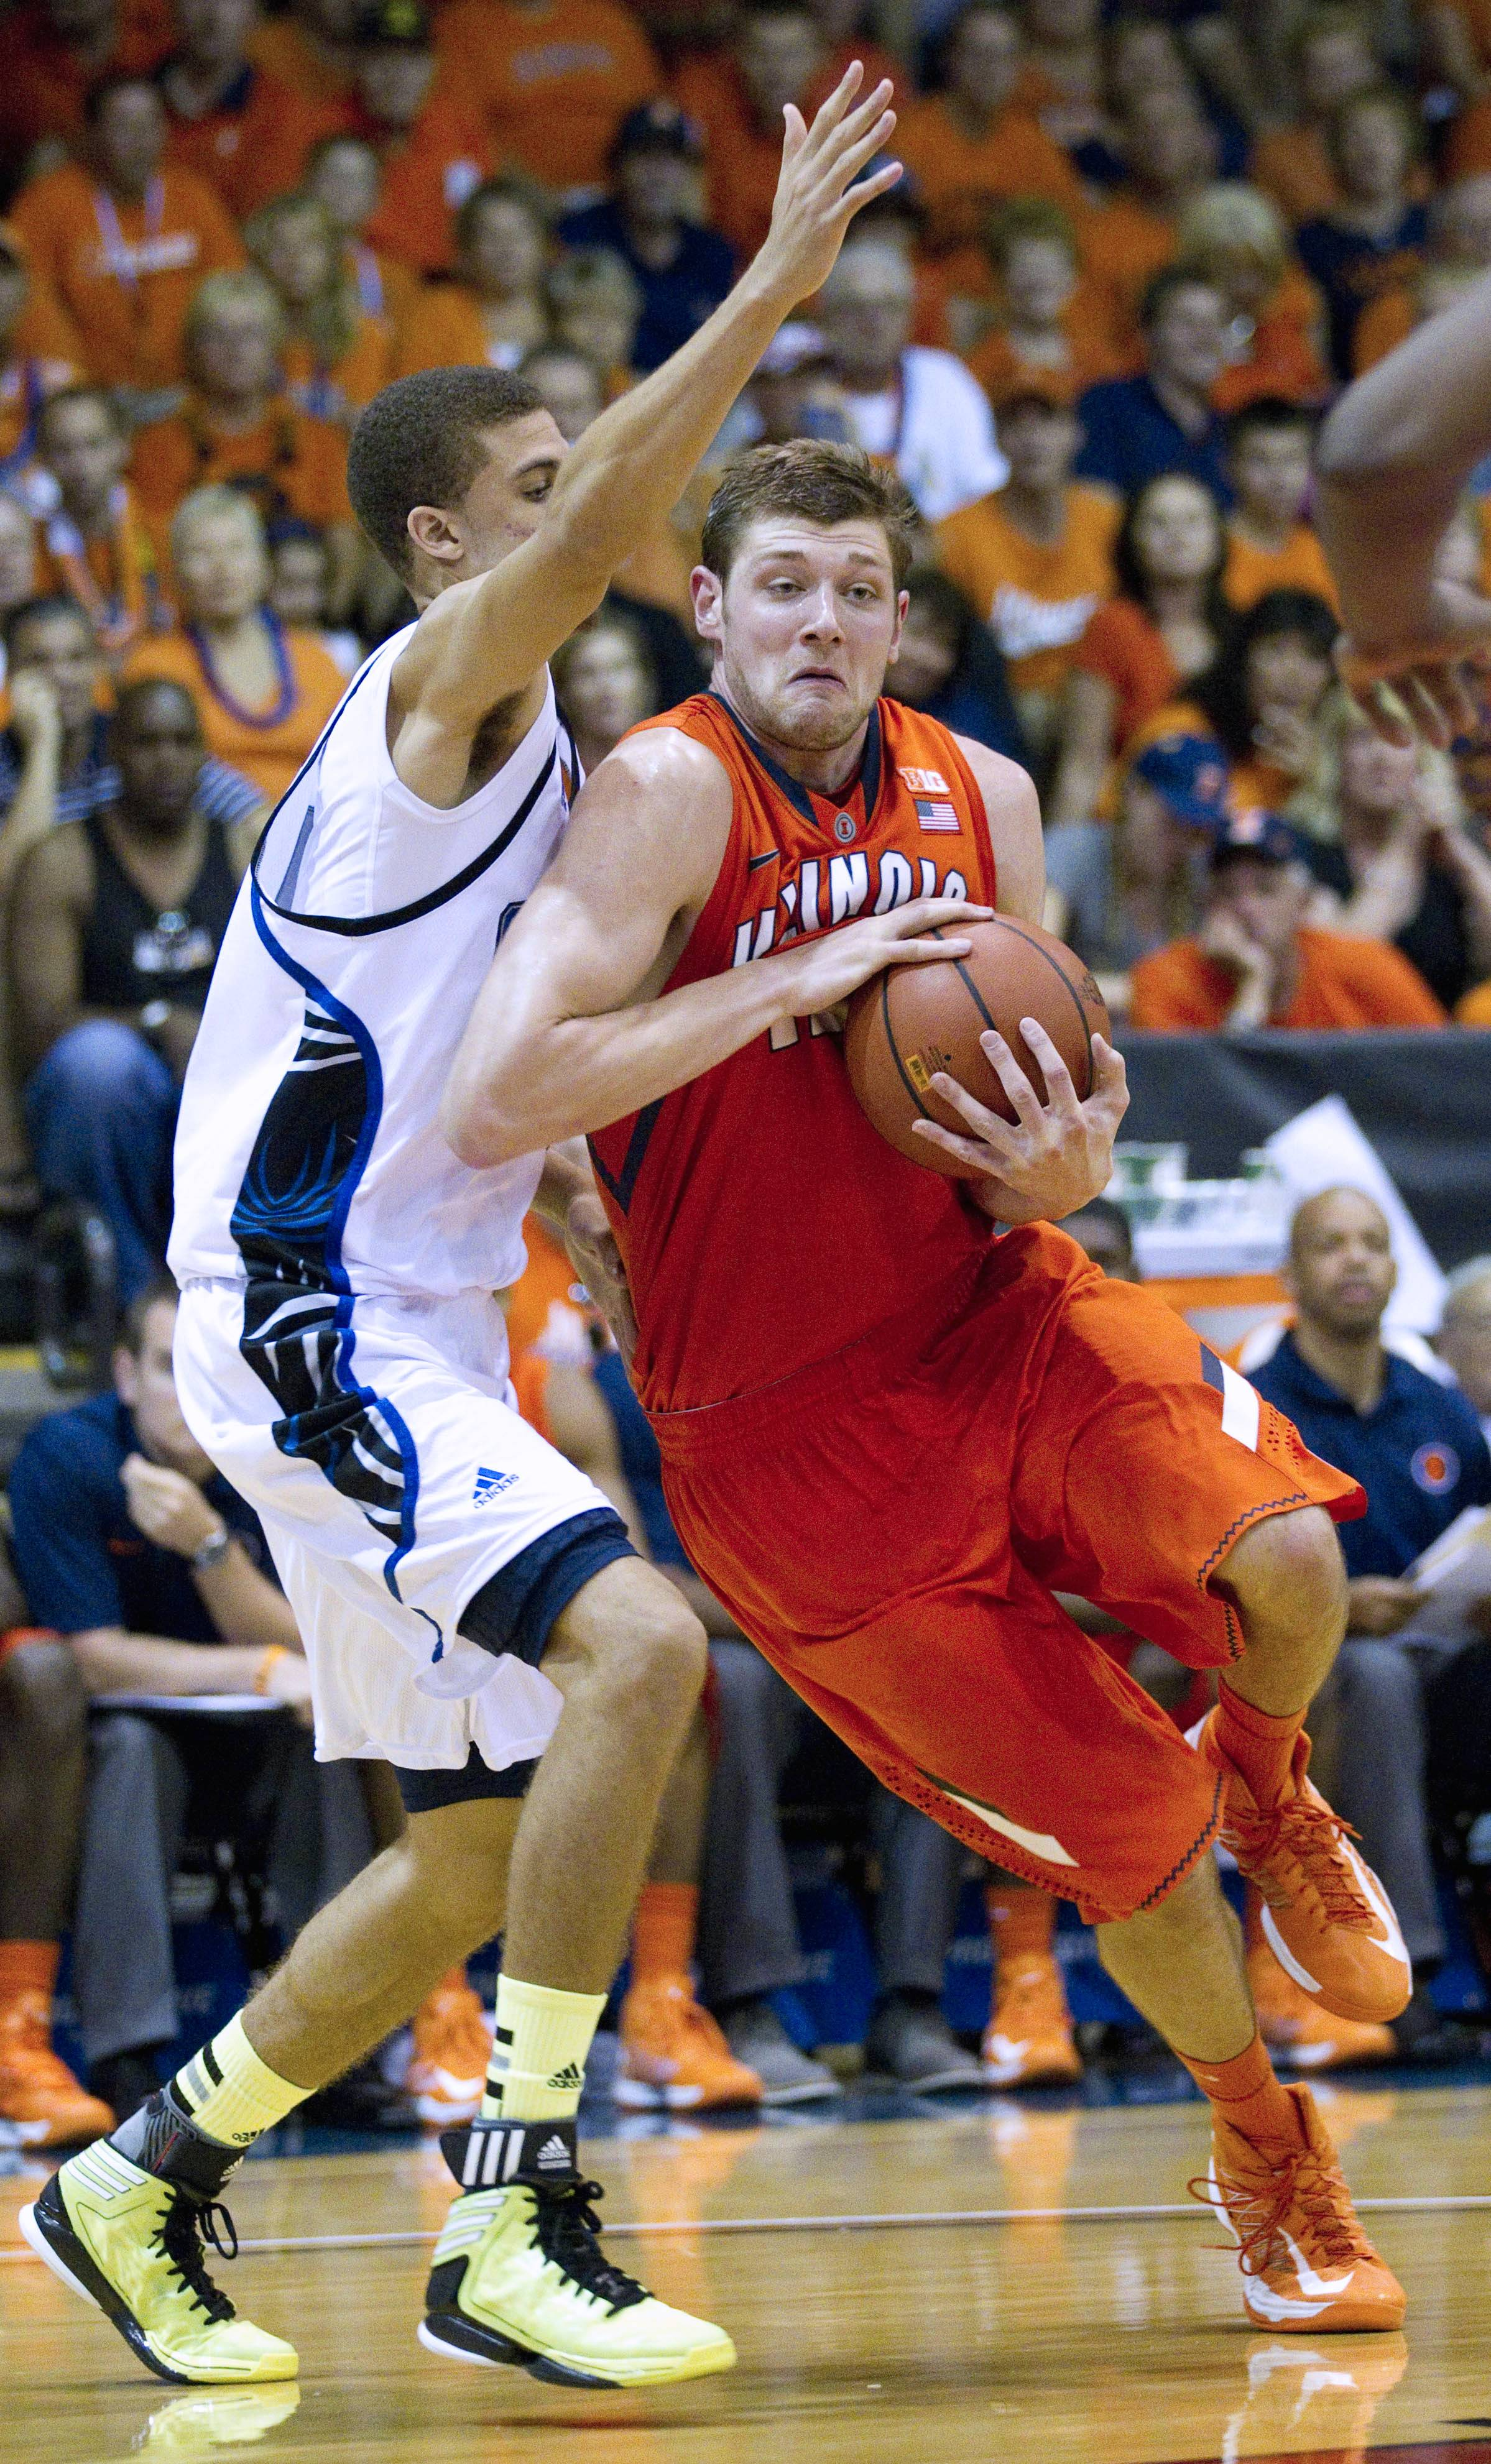 Chaminade forward Tyree Harrison, left, defends Illinois forward Tyler Griffey, right, Tuesday during the second half at the Maui Invitational in Lahaina, Hawaii. Illinois defeated Chaminade 84-61.